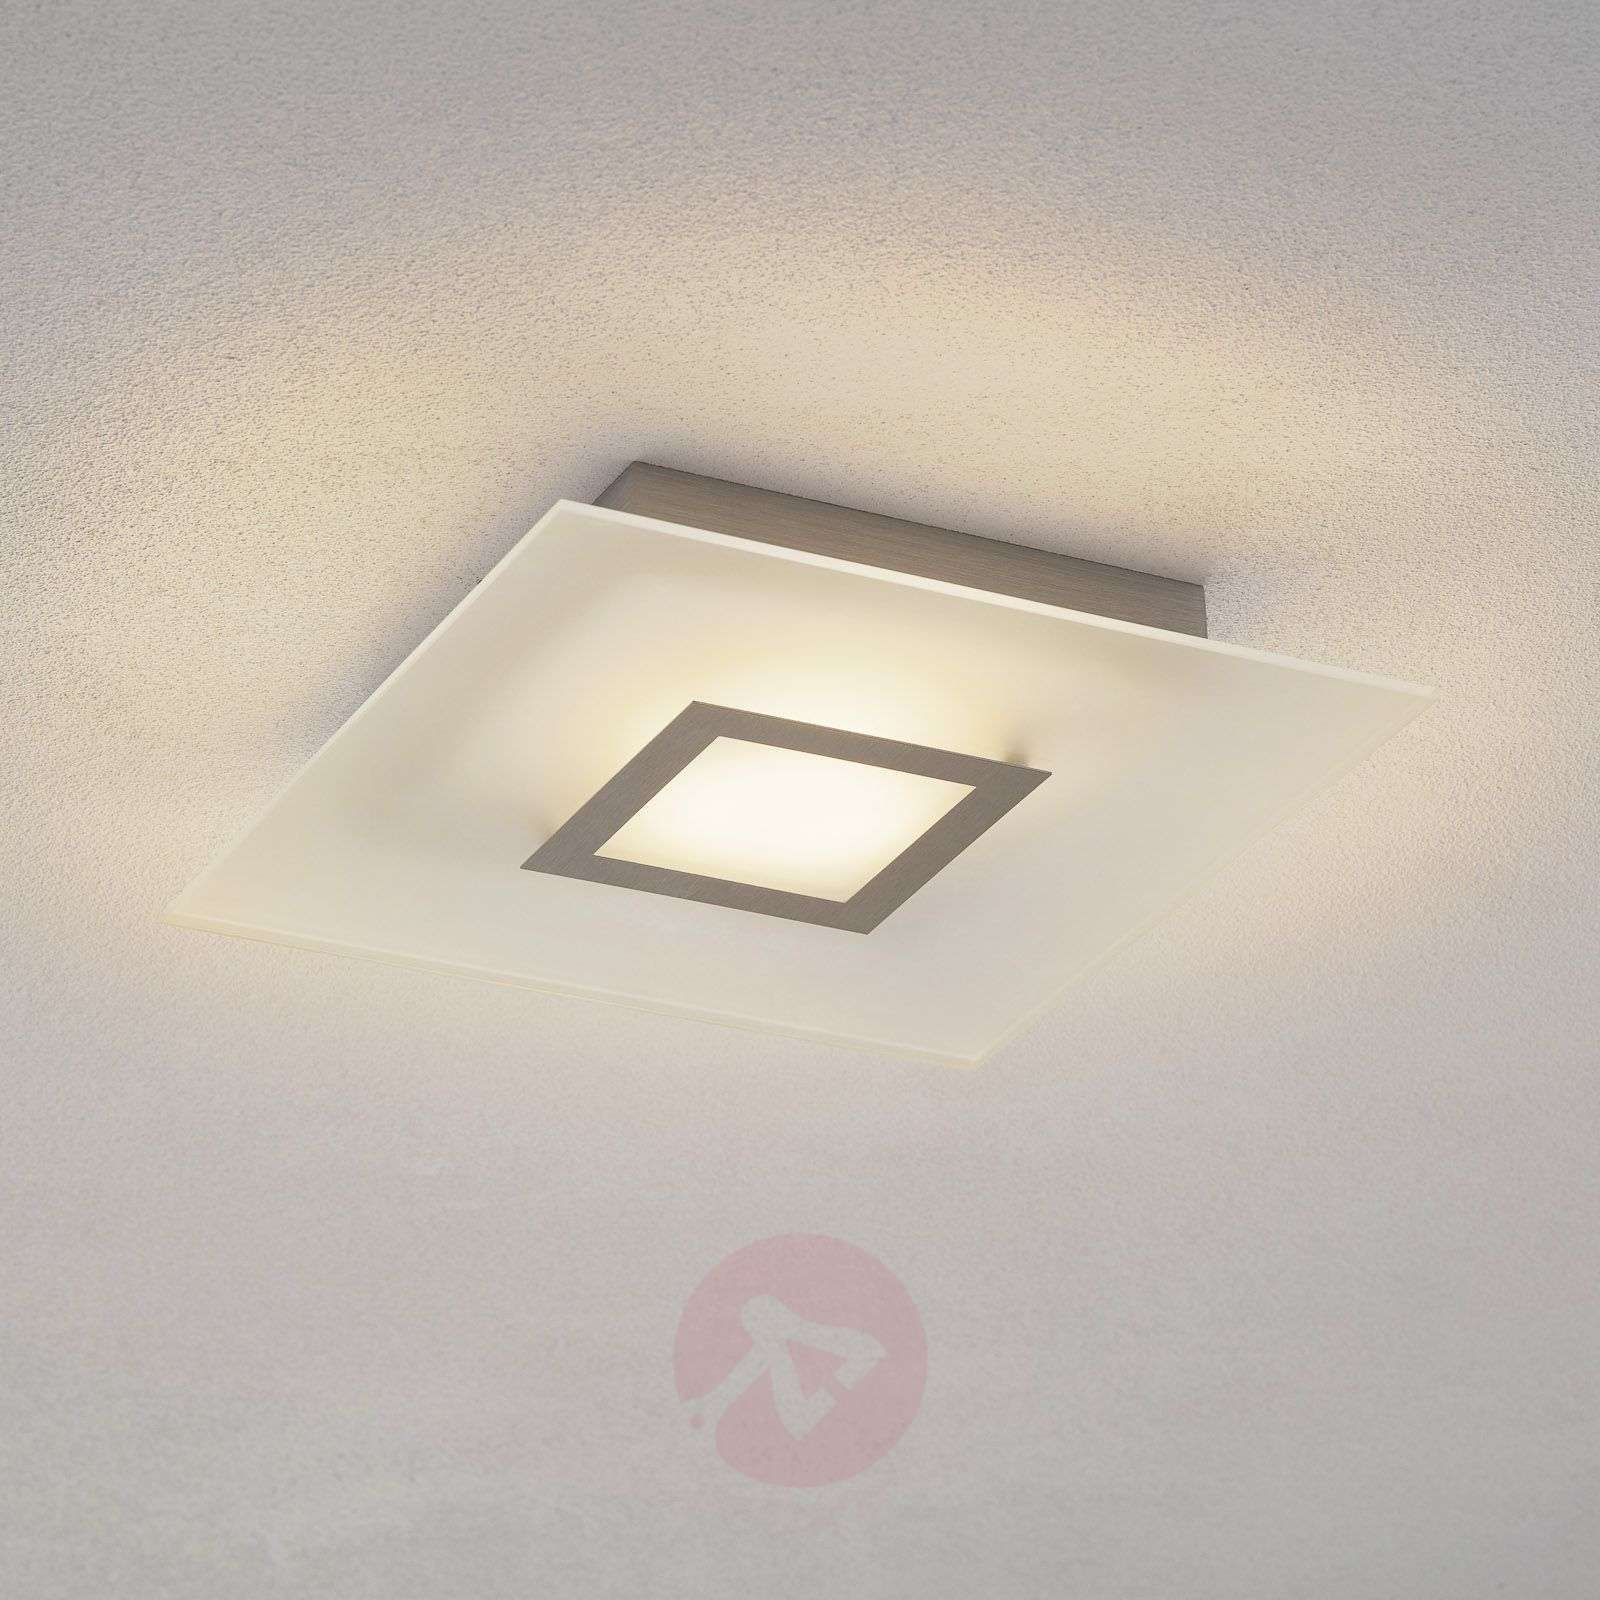 Plafoniera Con Sensore Incorporato : Acquista flat plafoniera led quadrata dimmerabile lampade.it